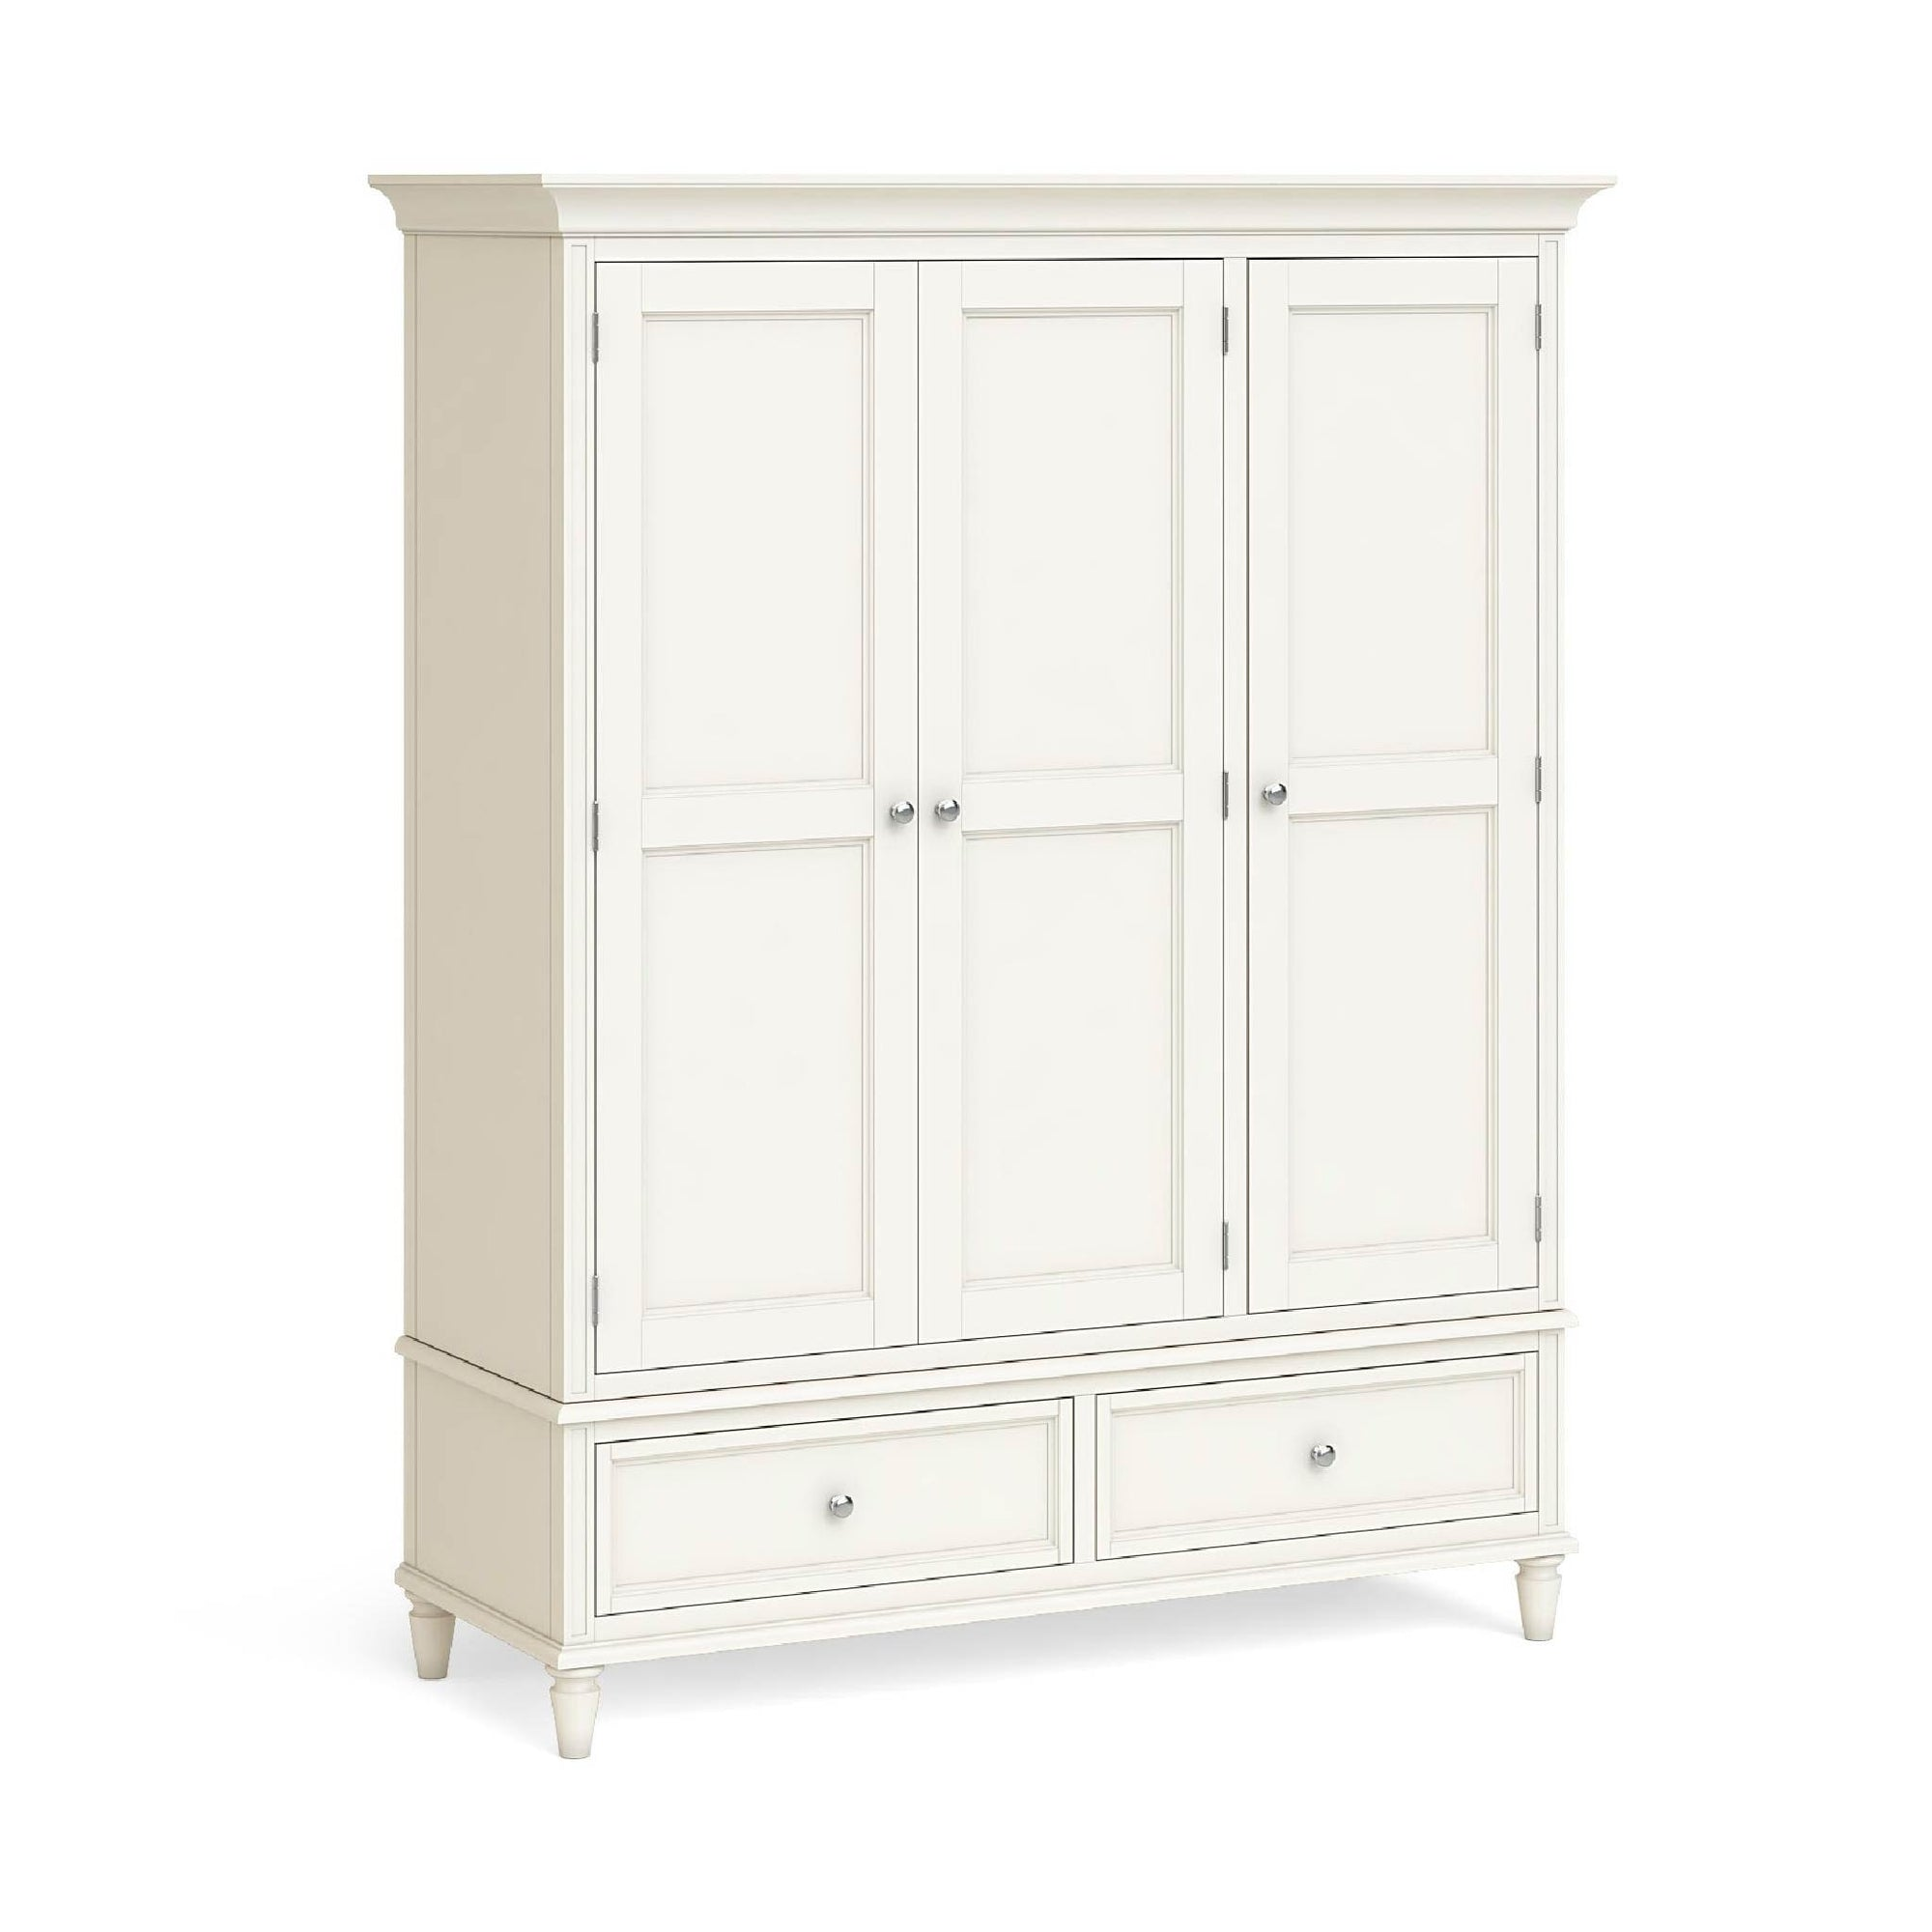 Mulsanne Cream Painted Triple Wardrobe with Drawers by Roseland Furniture